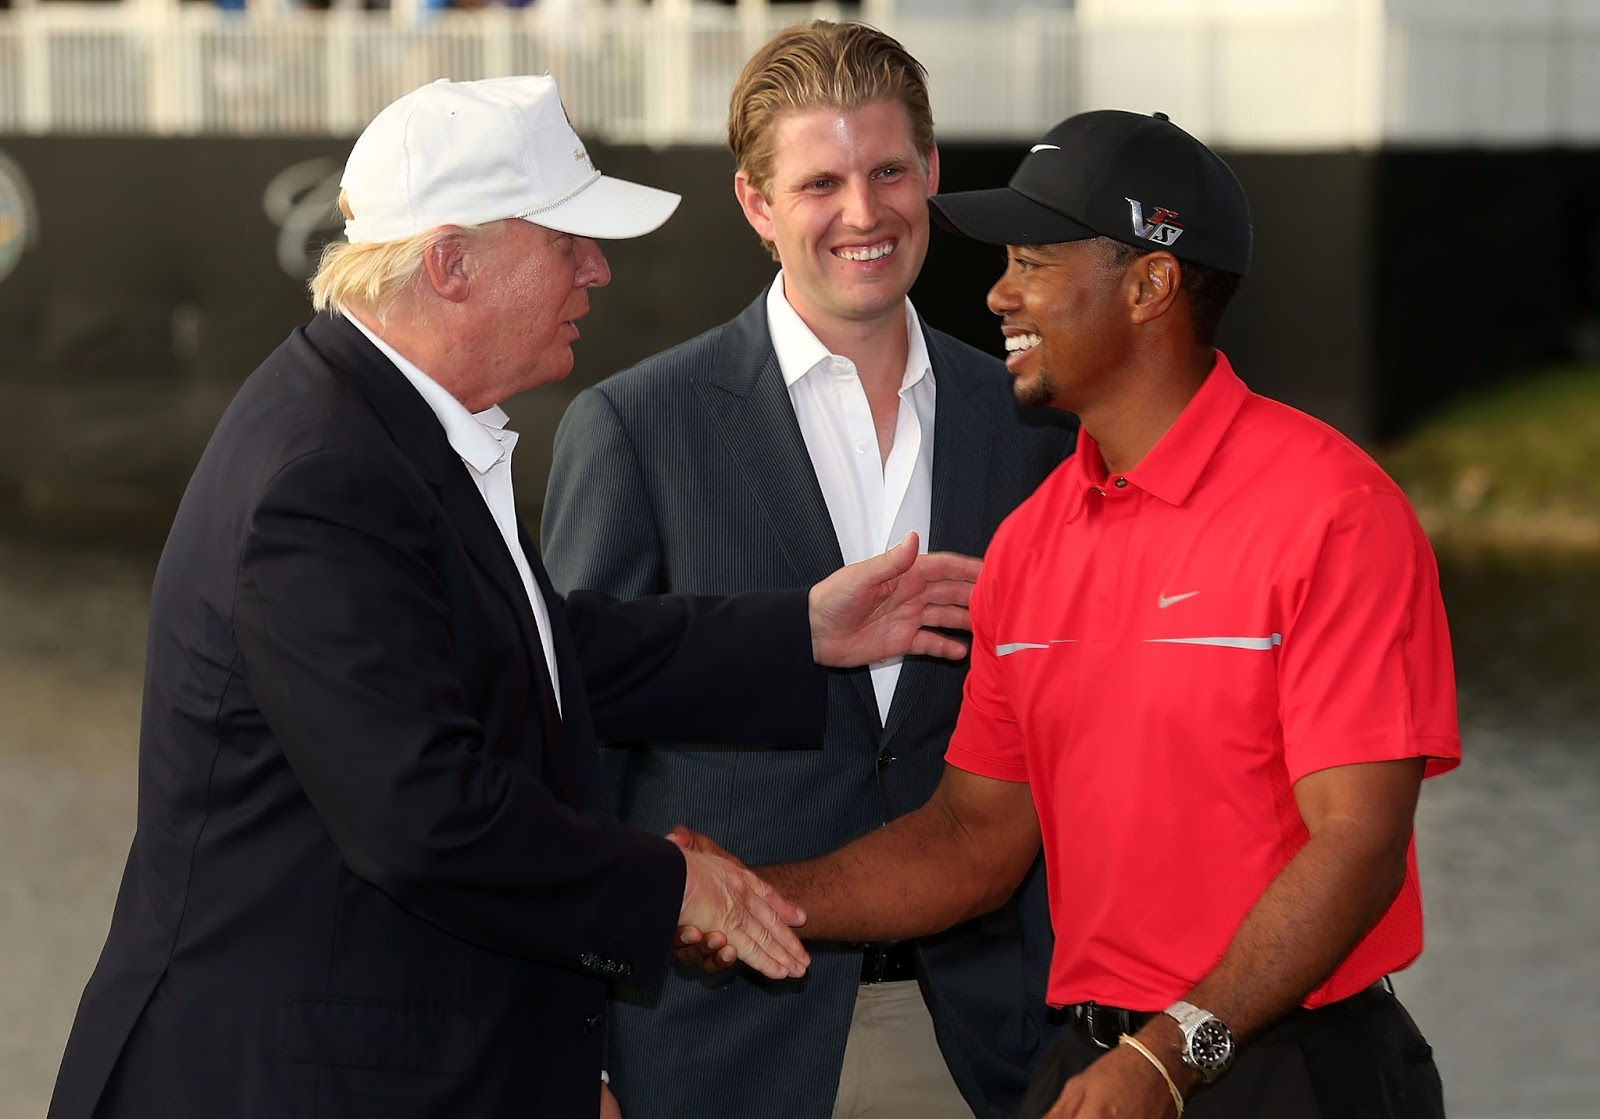 TIGER WOODS, DONALD TRUMP 5